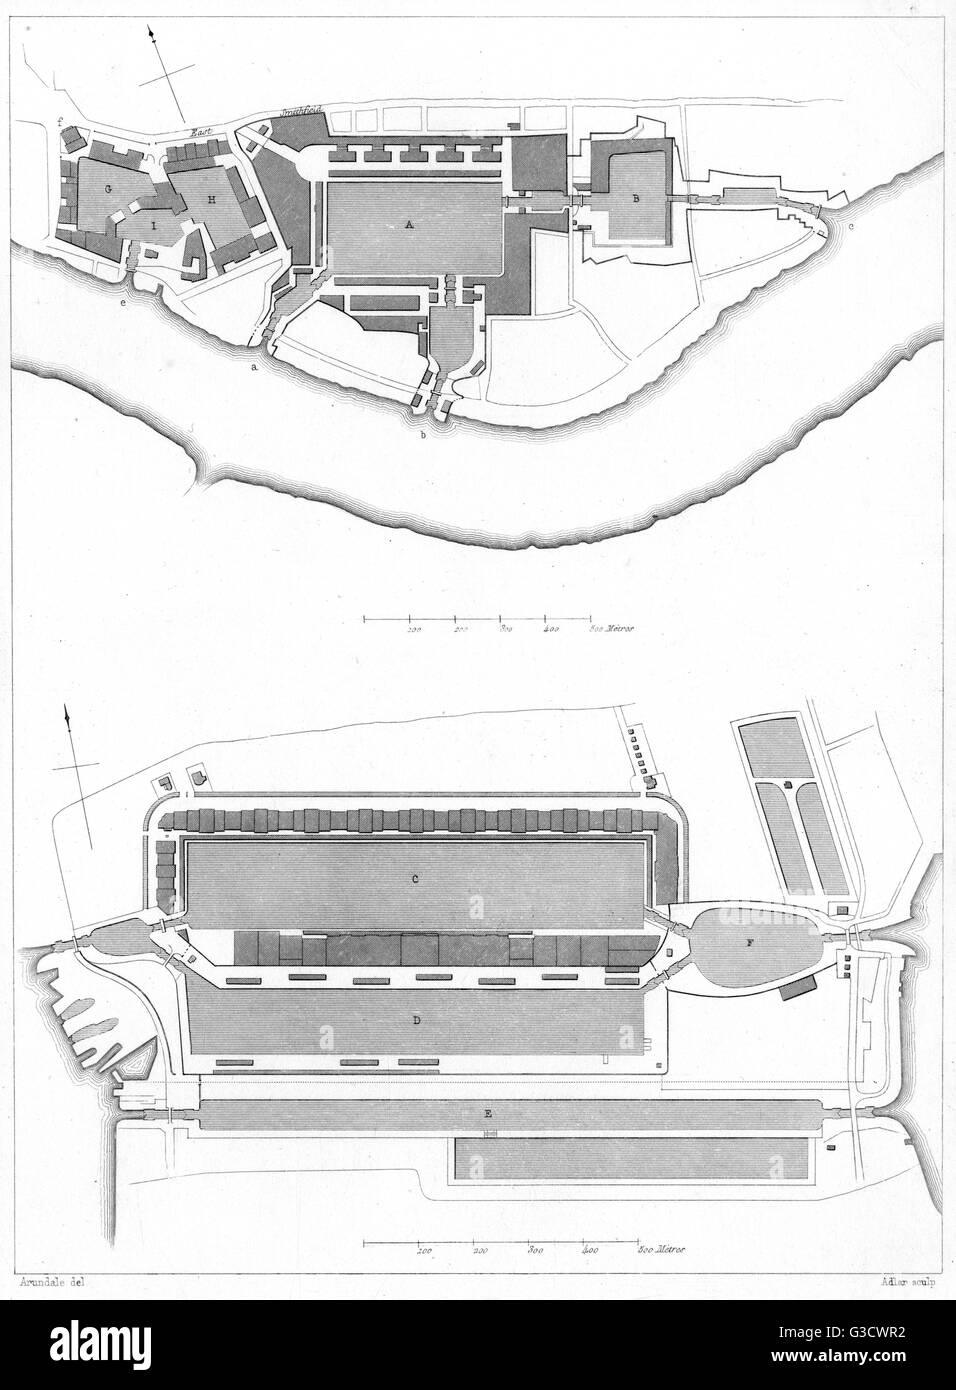 London Docks - St Catherine's and West India Docks - map/plan views     Date: circa 1855 - Stock Image